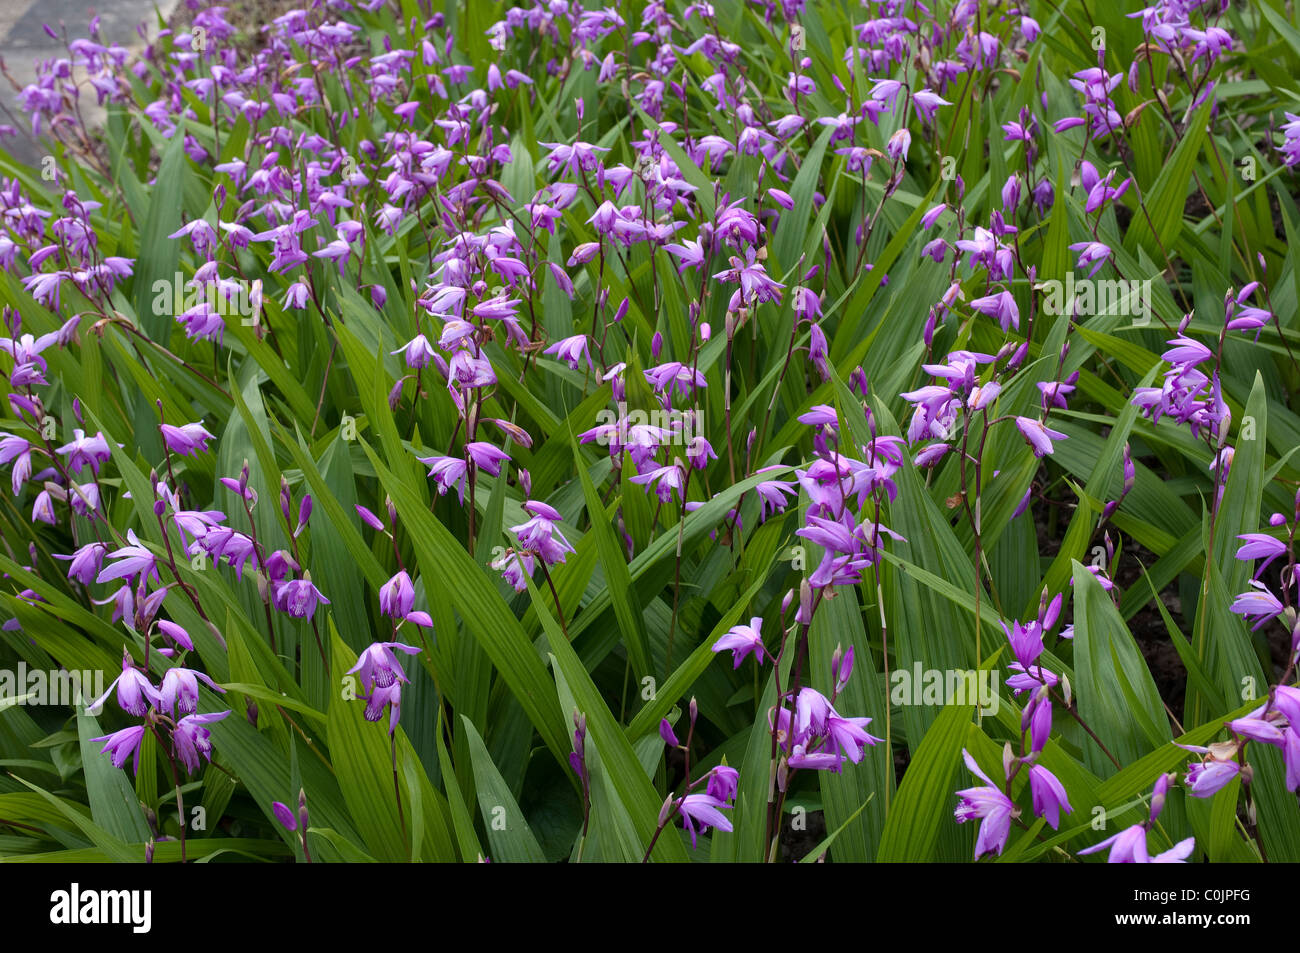 Spathoglottis Orchids Are Easy To Cultivate Here And Sought After For Pretty Flowers Evergreen Foliage Leaves Long Slender